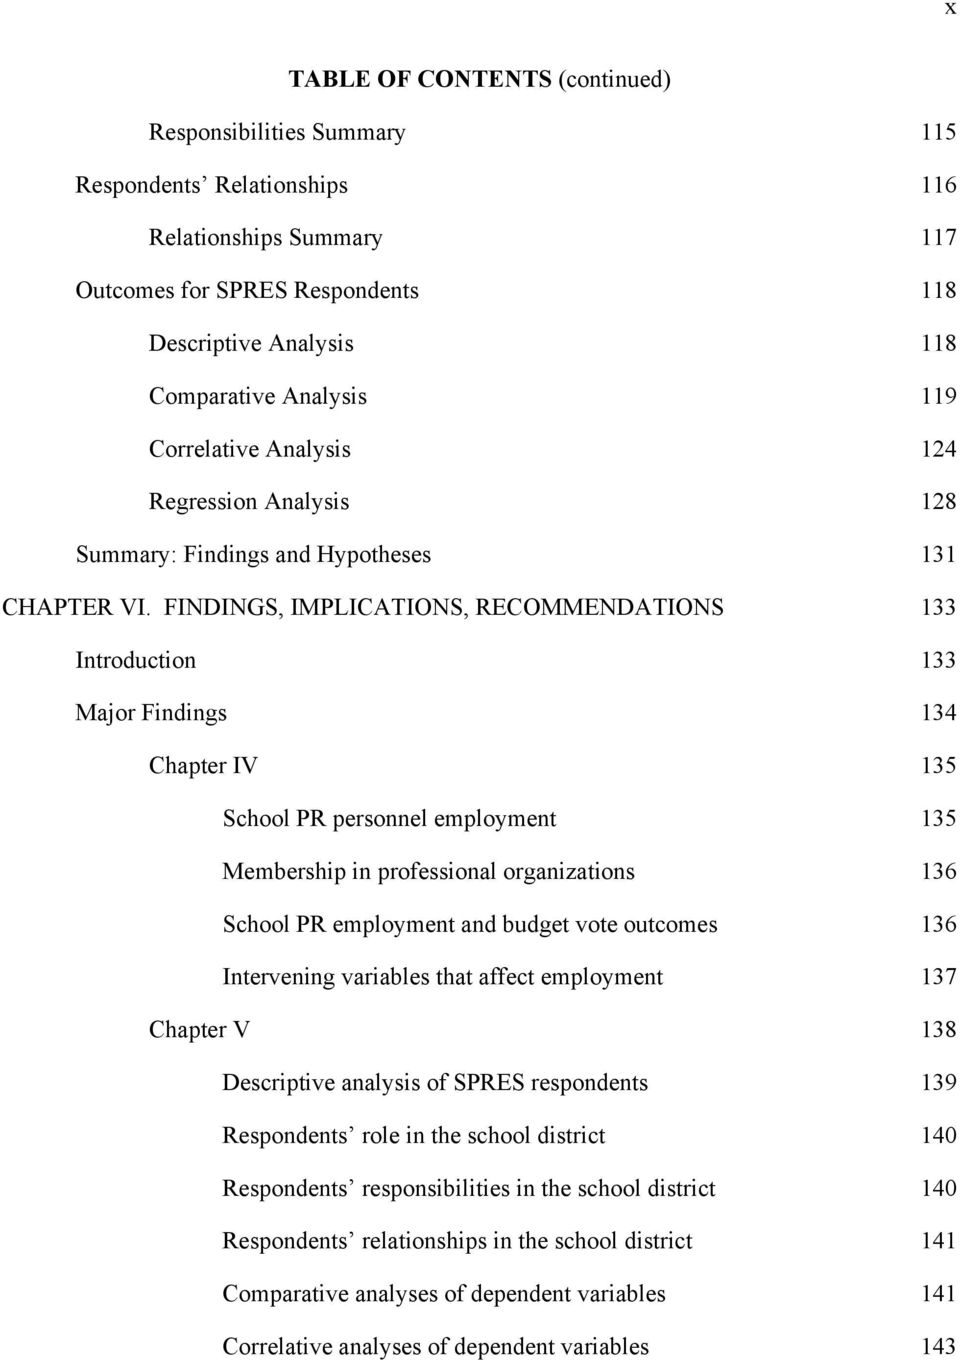 FINDINGS, IMPLICATIONS, RECOMMENDATIONS 133 Introduction 133 Major Findings 134 Chapter IV 135 School PR personnel employment 135 Membership in professional organizations 136 School PR employment and